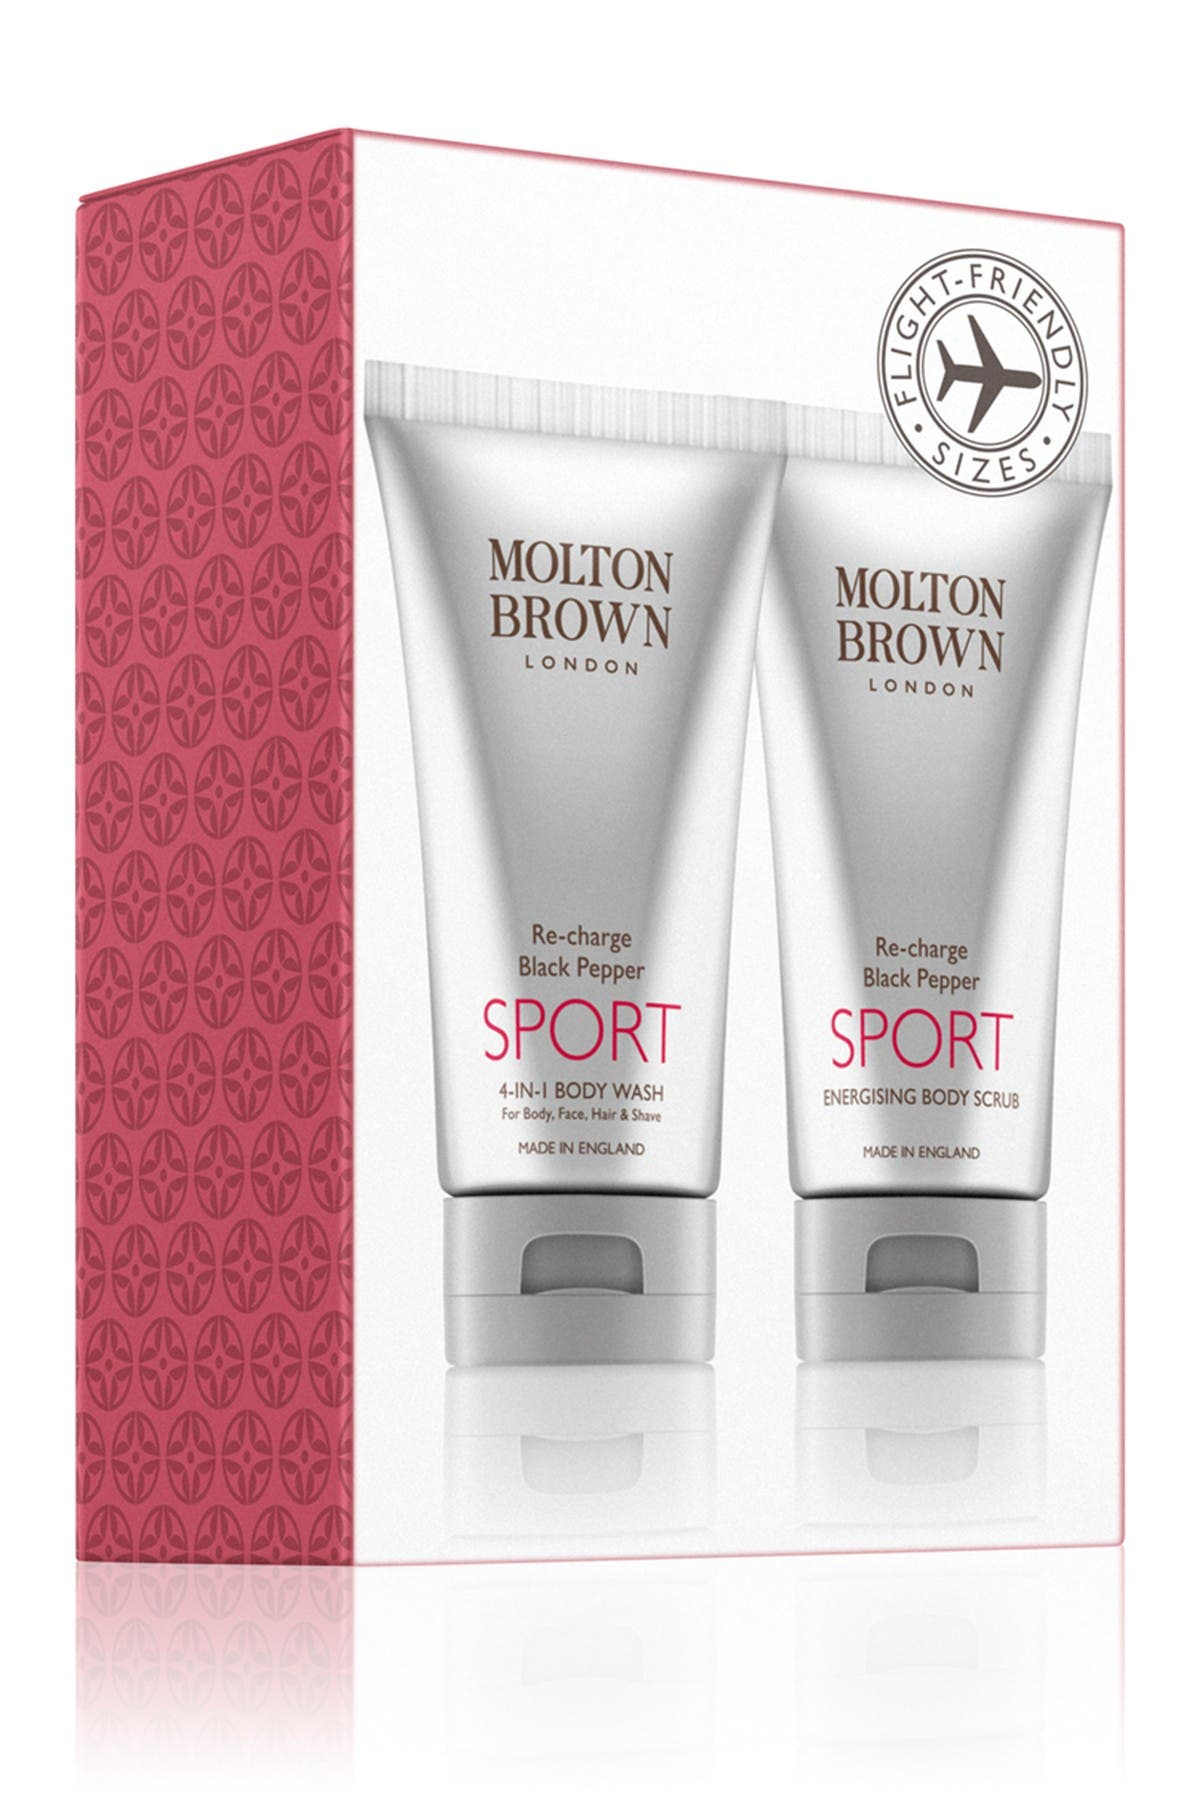 Image of Molton Brown Re-charge Black Pepper SPORT Travel Gift